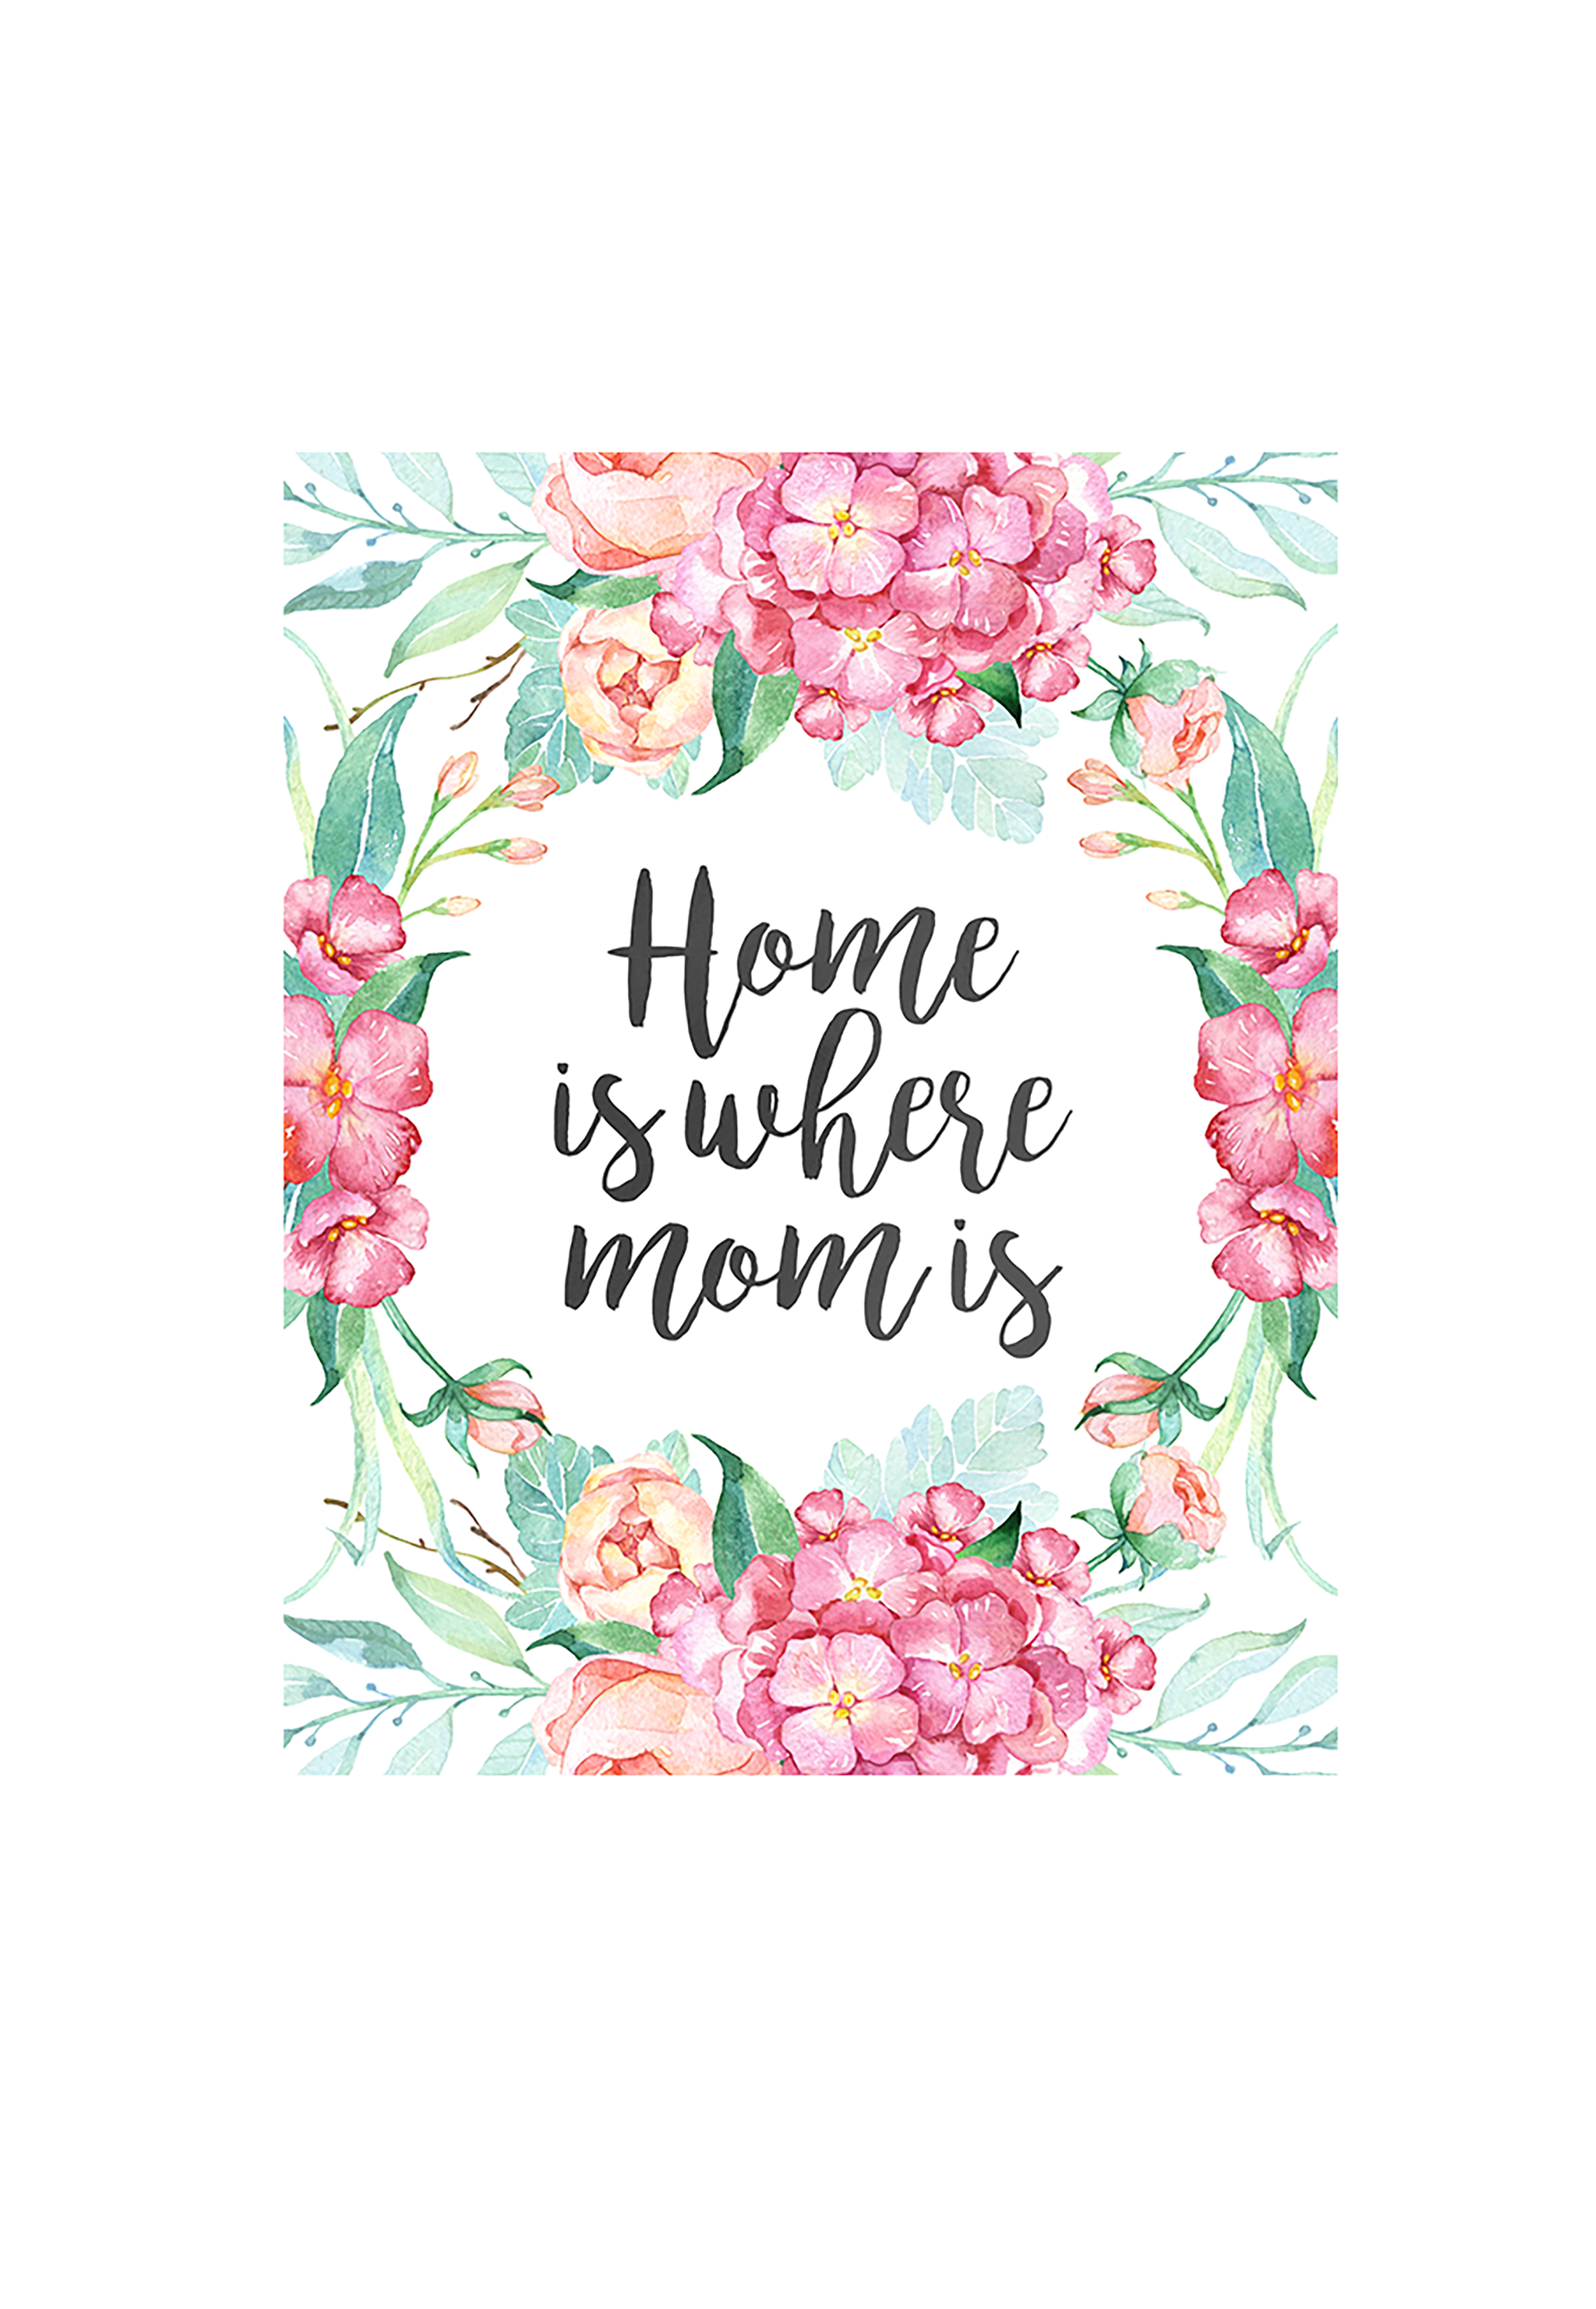 18 Mothers Day Cards - Free Printable Mother's Day Cards - Free Printable Mothers Day Card From Dog